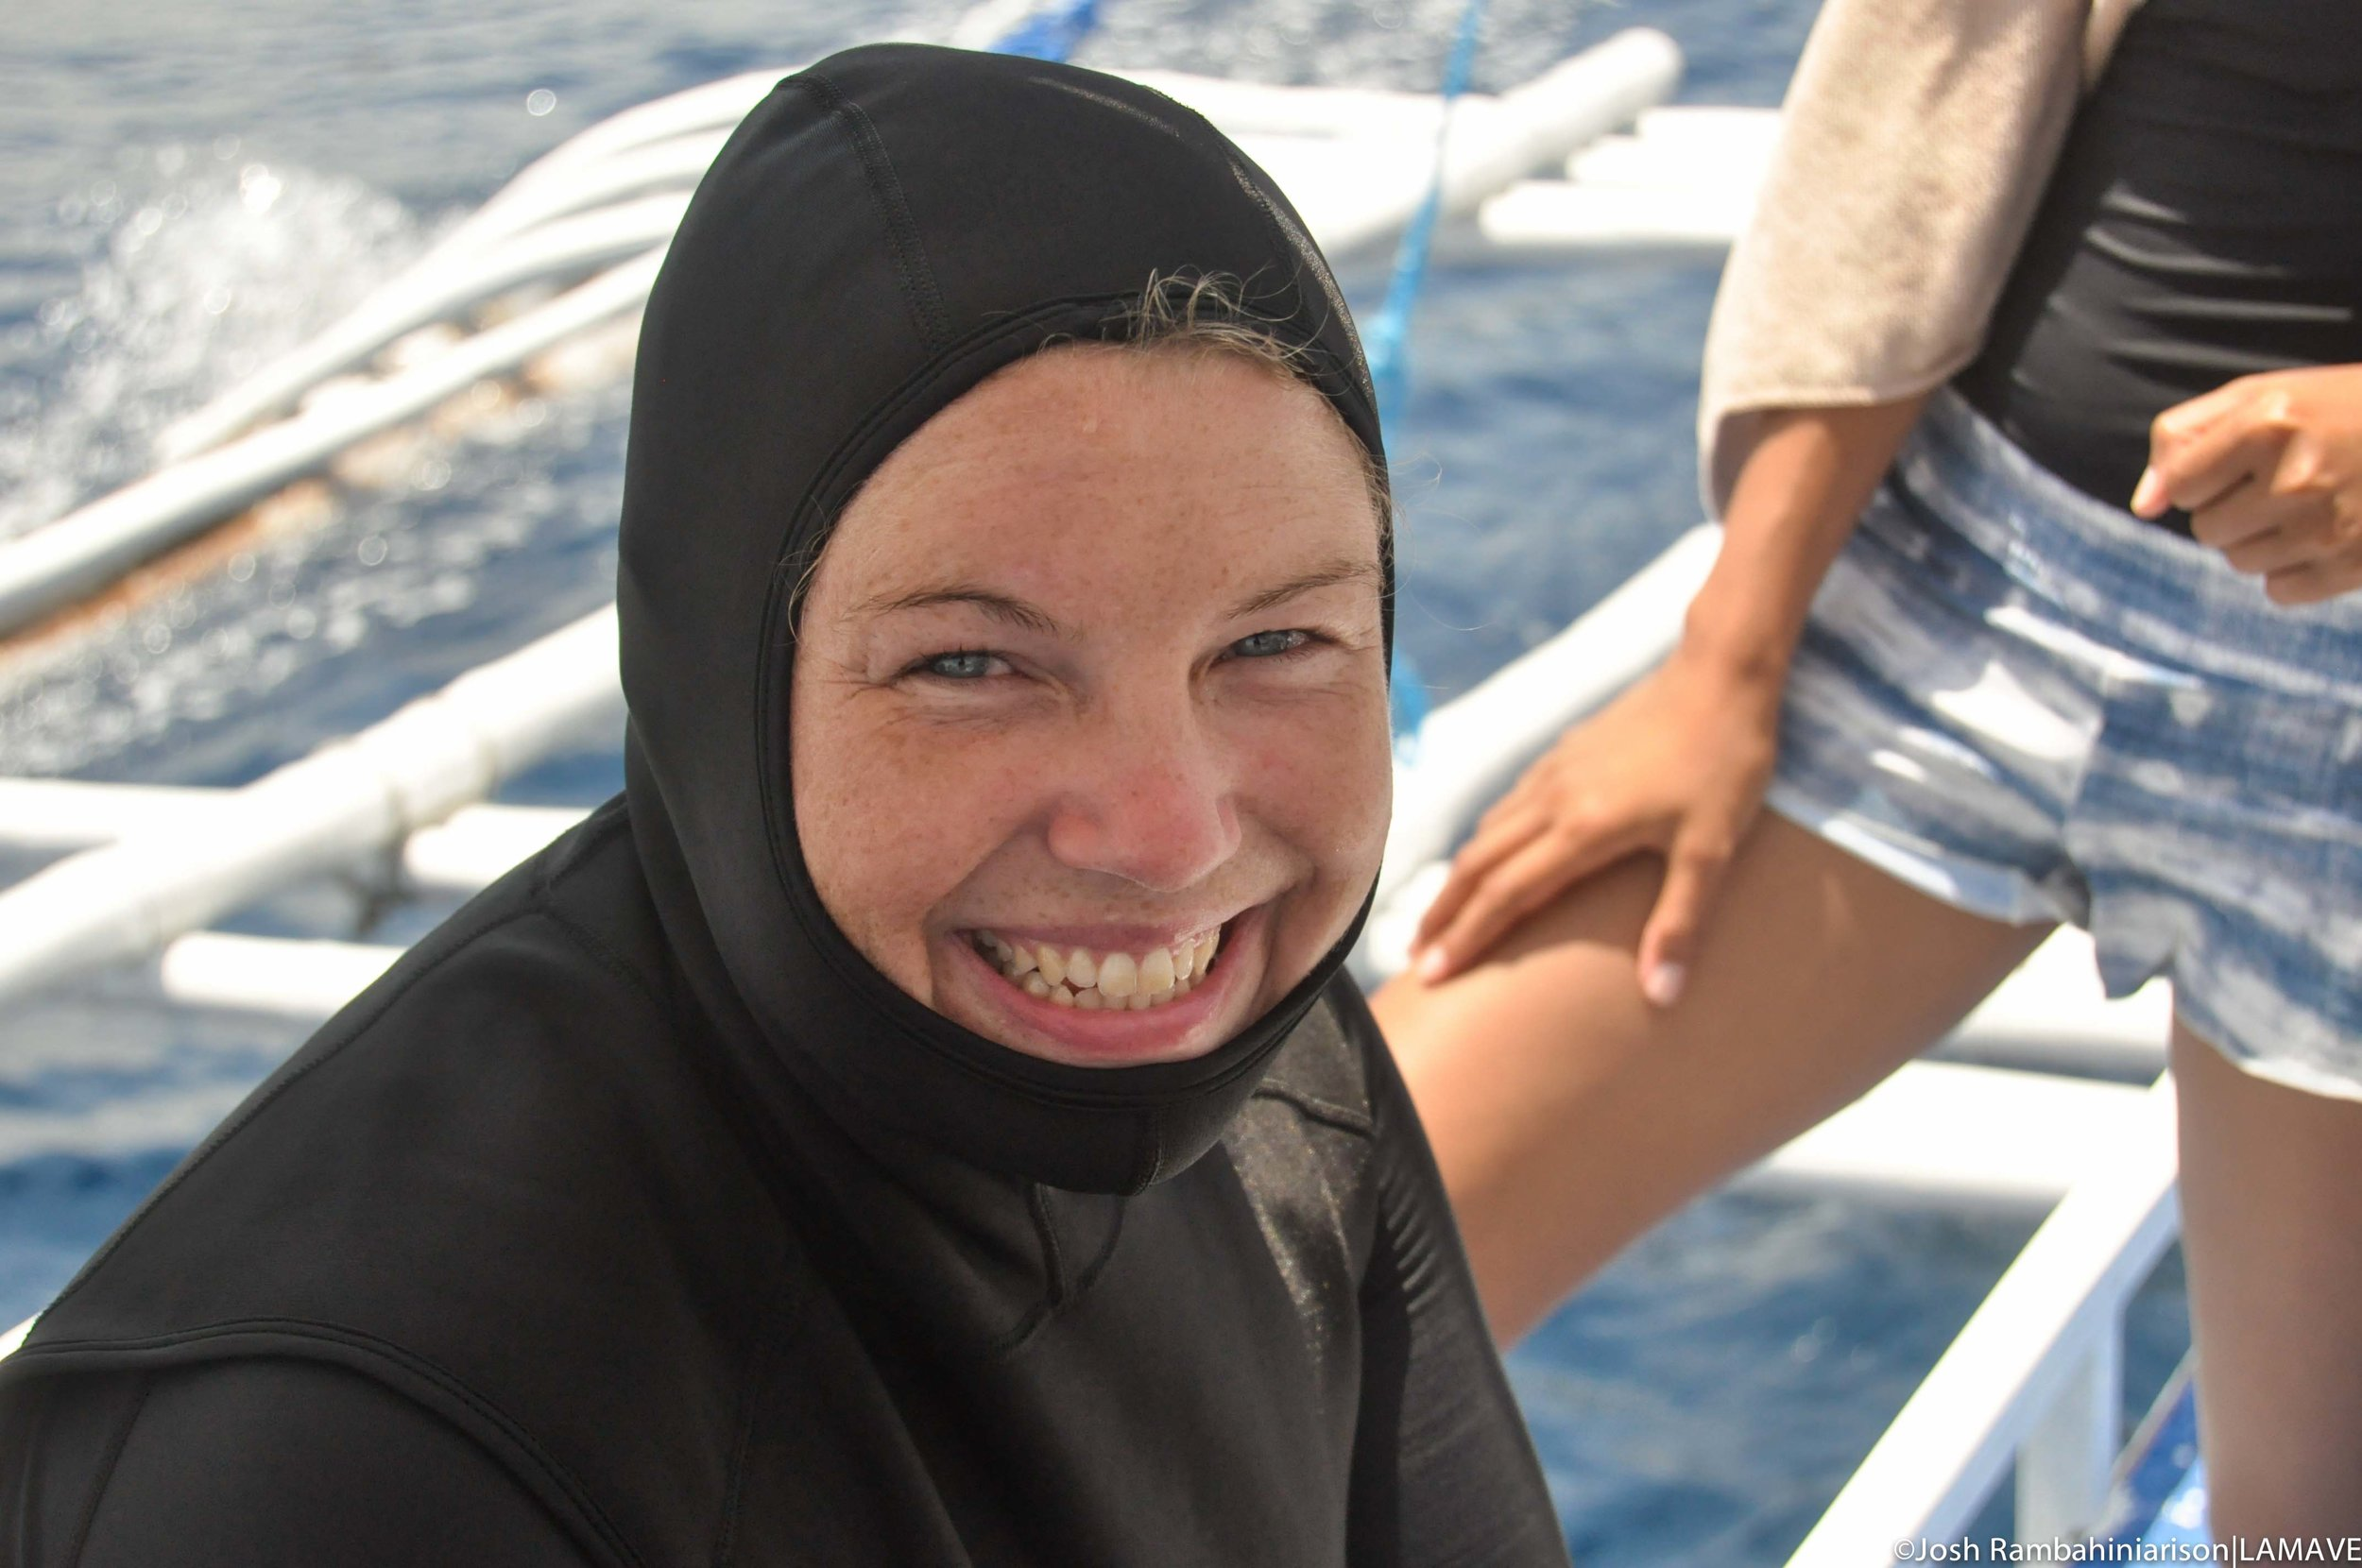 Lene Fron Christensen getting ready to dive Manta Bowl with the team.